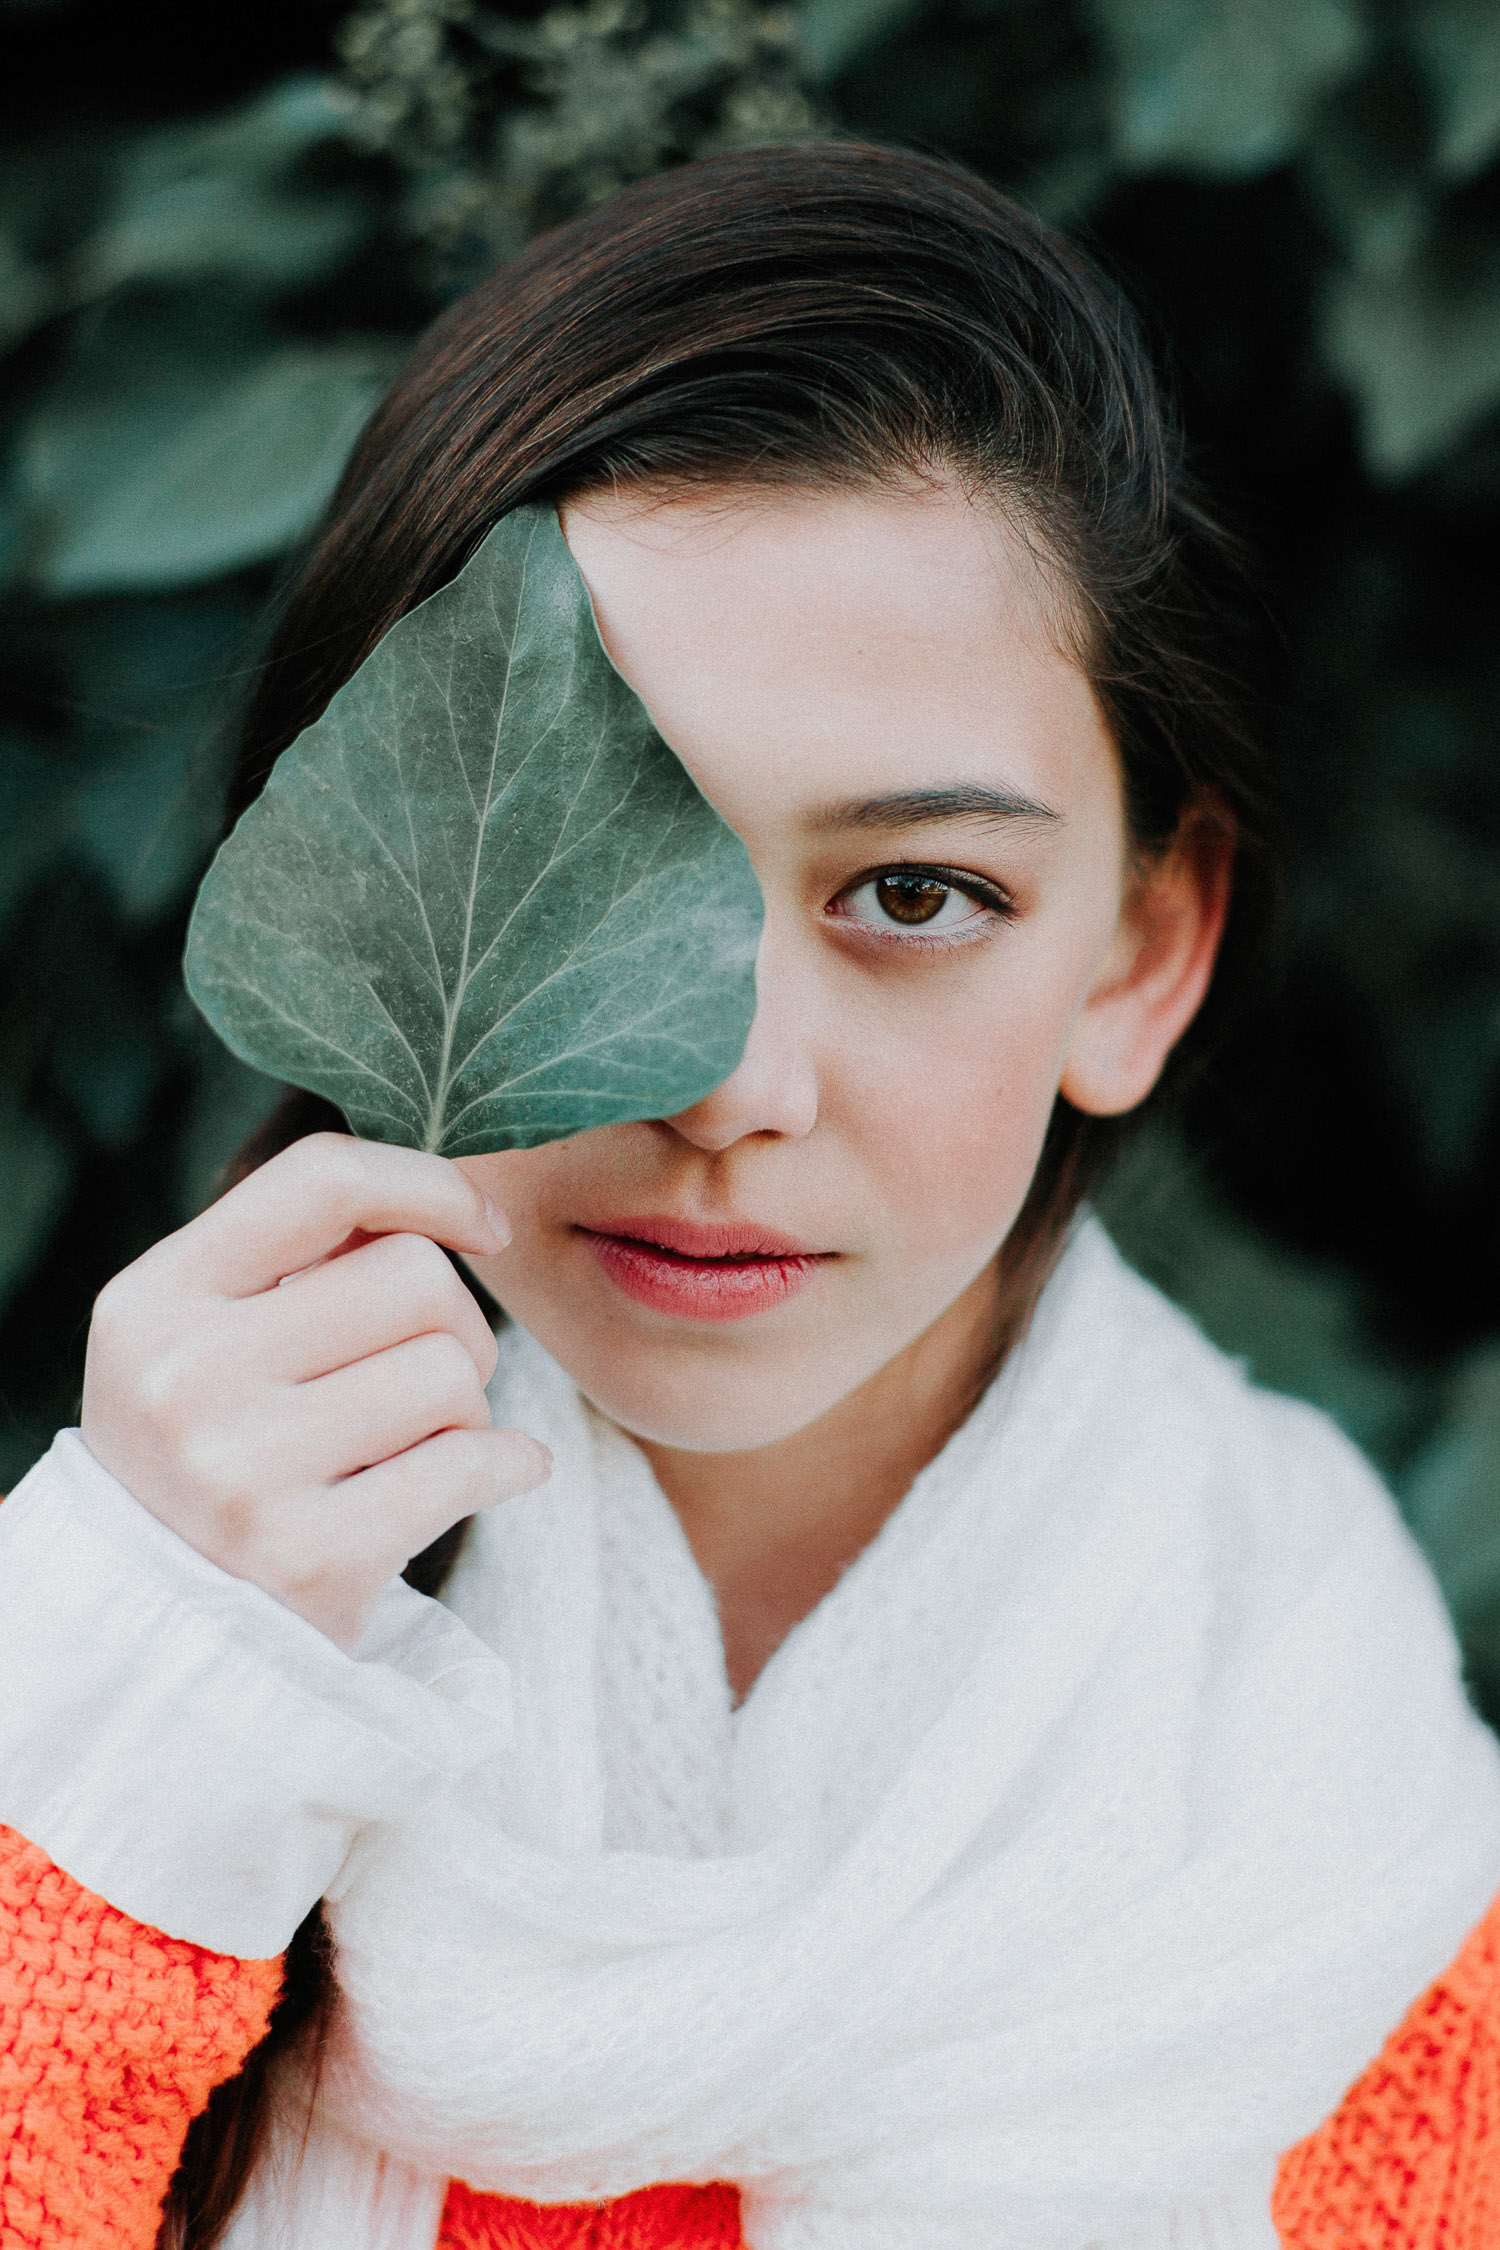 Image of orange sweater girl over her one eye with a leaf